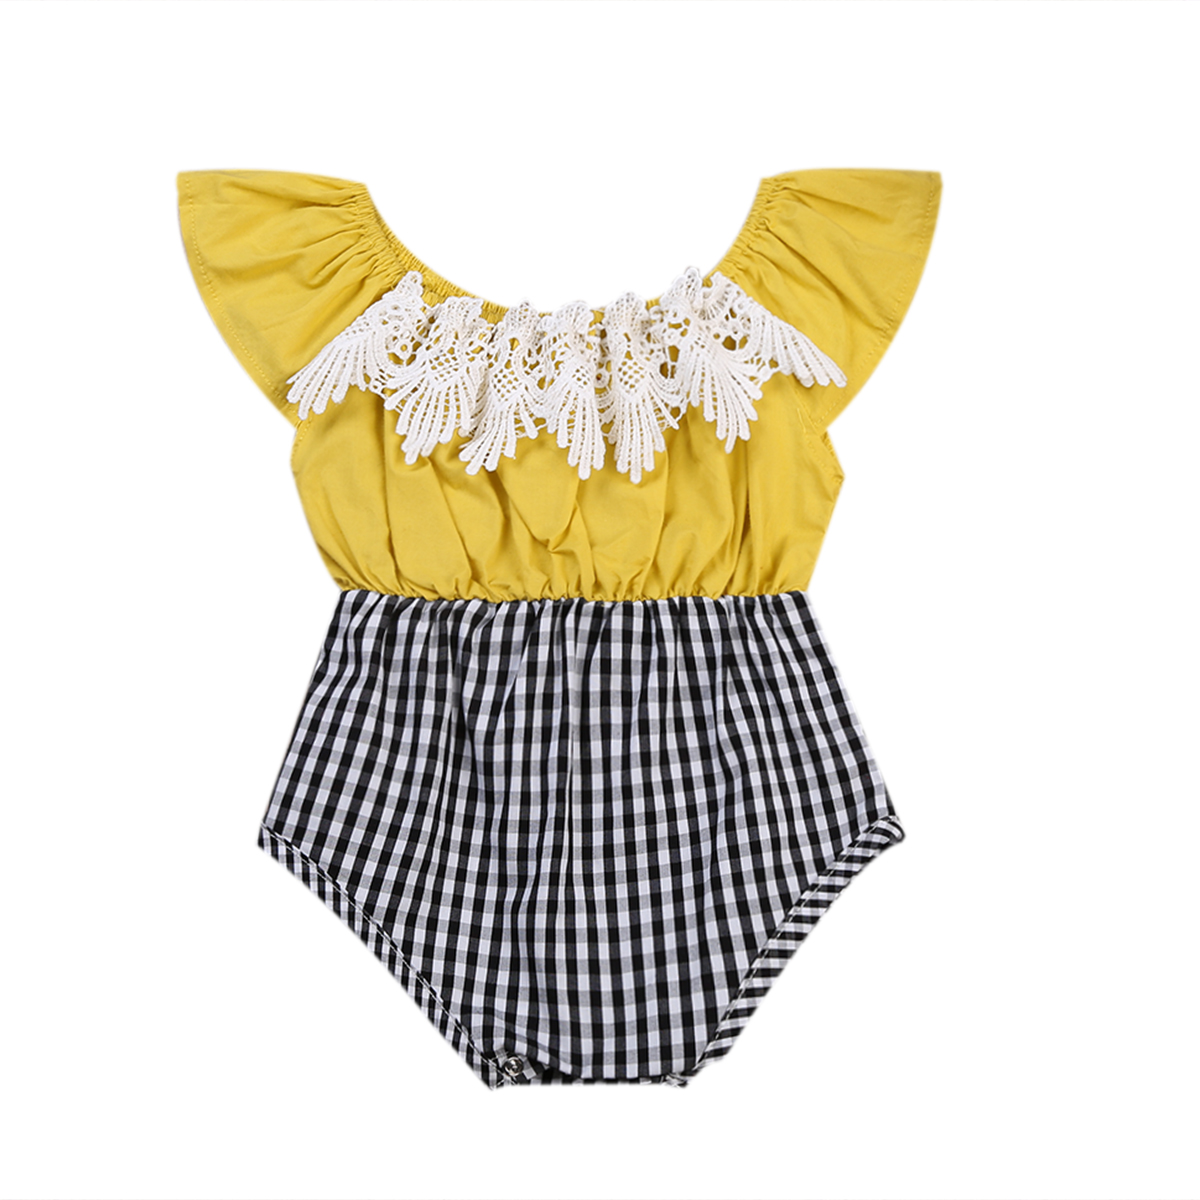 Summer Newborn Kids Baby Clothes Infant Girls Lace Patchwork Plaid Romper Jumpsuit Outfit Cute Baby Girl Romper newest newborn photography props baby romper studio photography accessories lace romper back tie girls outfit baby girl lace